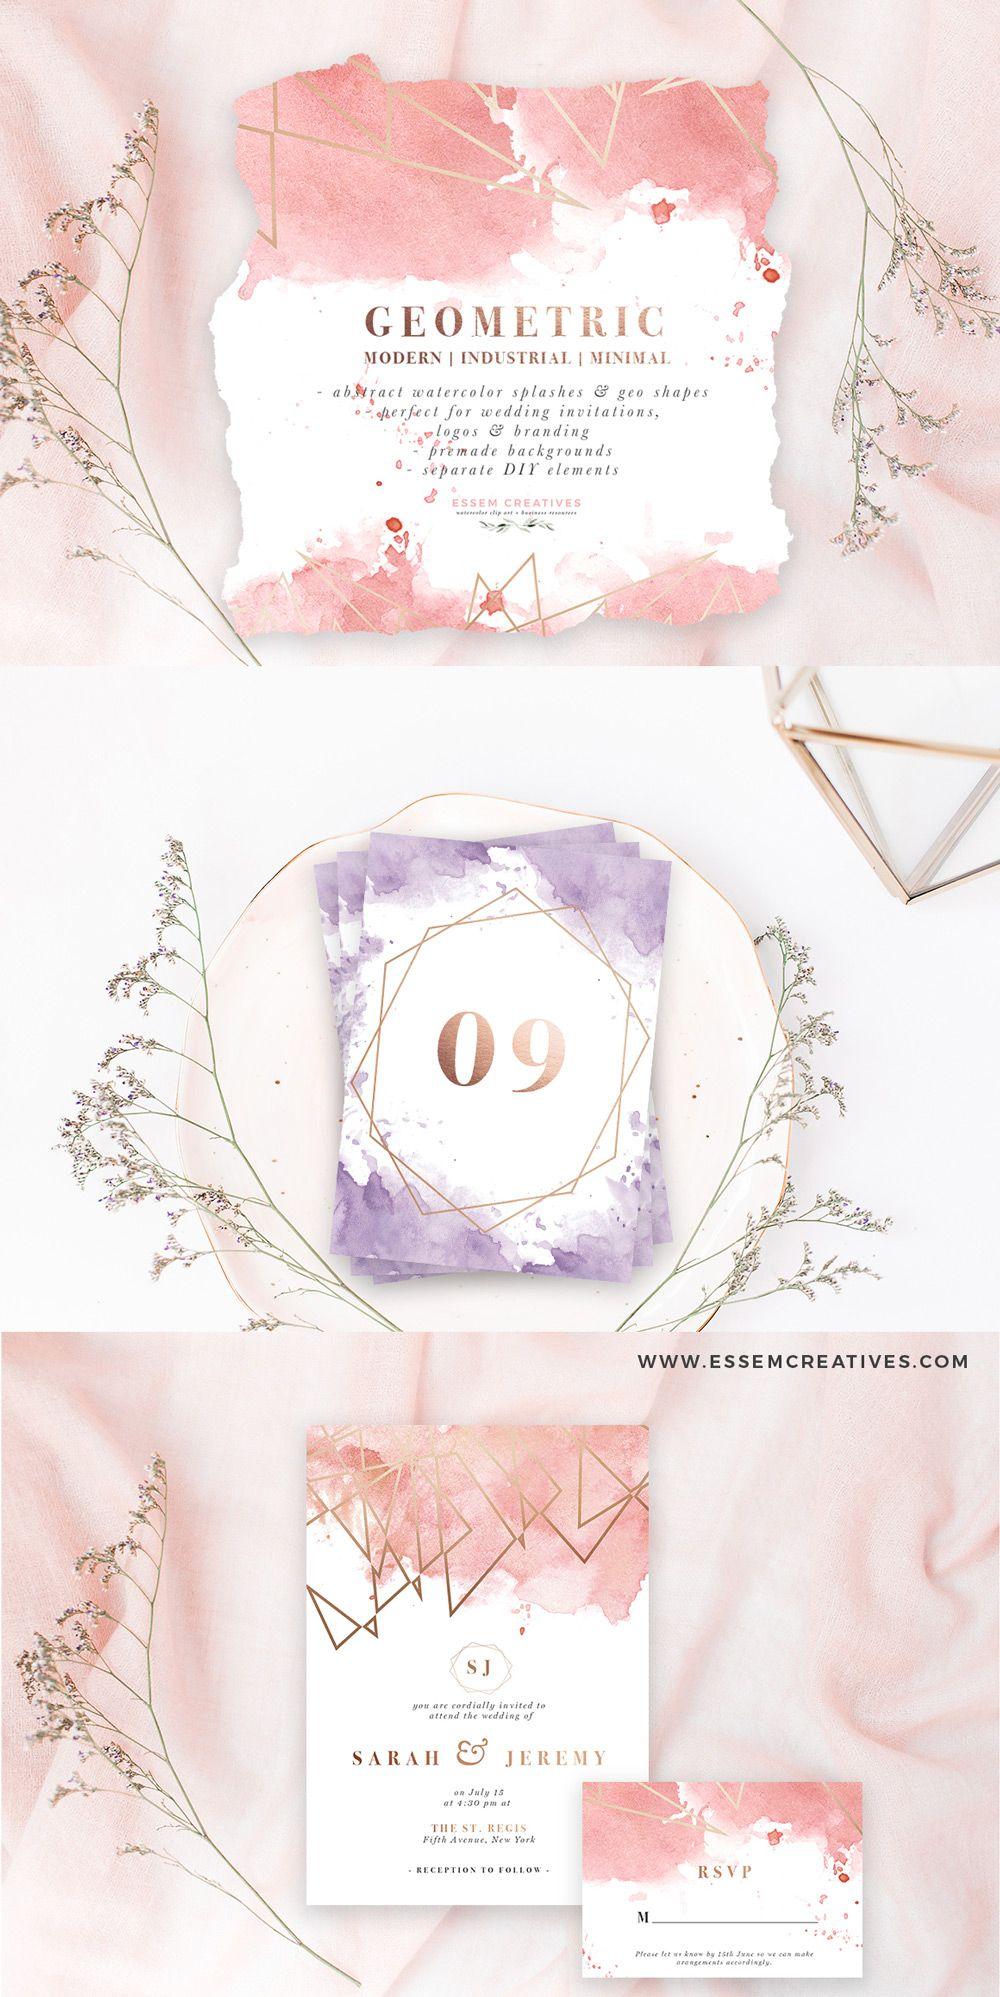 Diy Geometric Watercolor Wedding Invitation Backgrounds Clipart